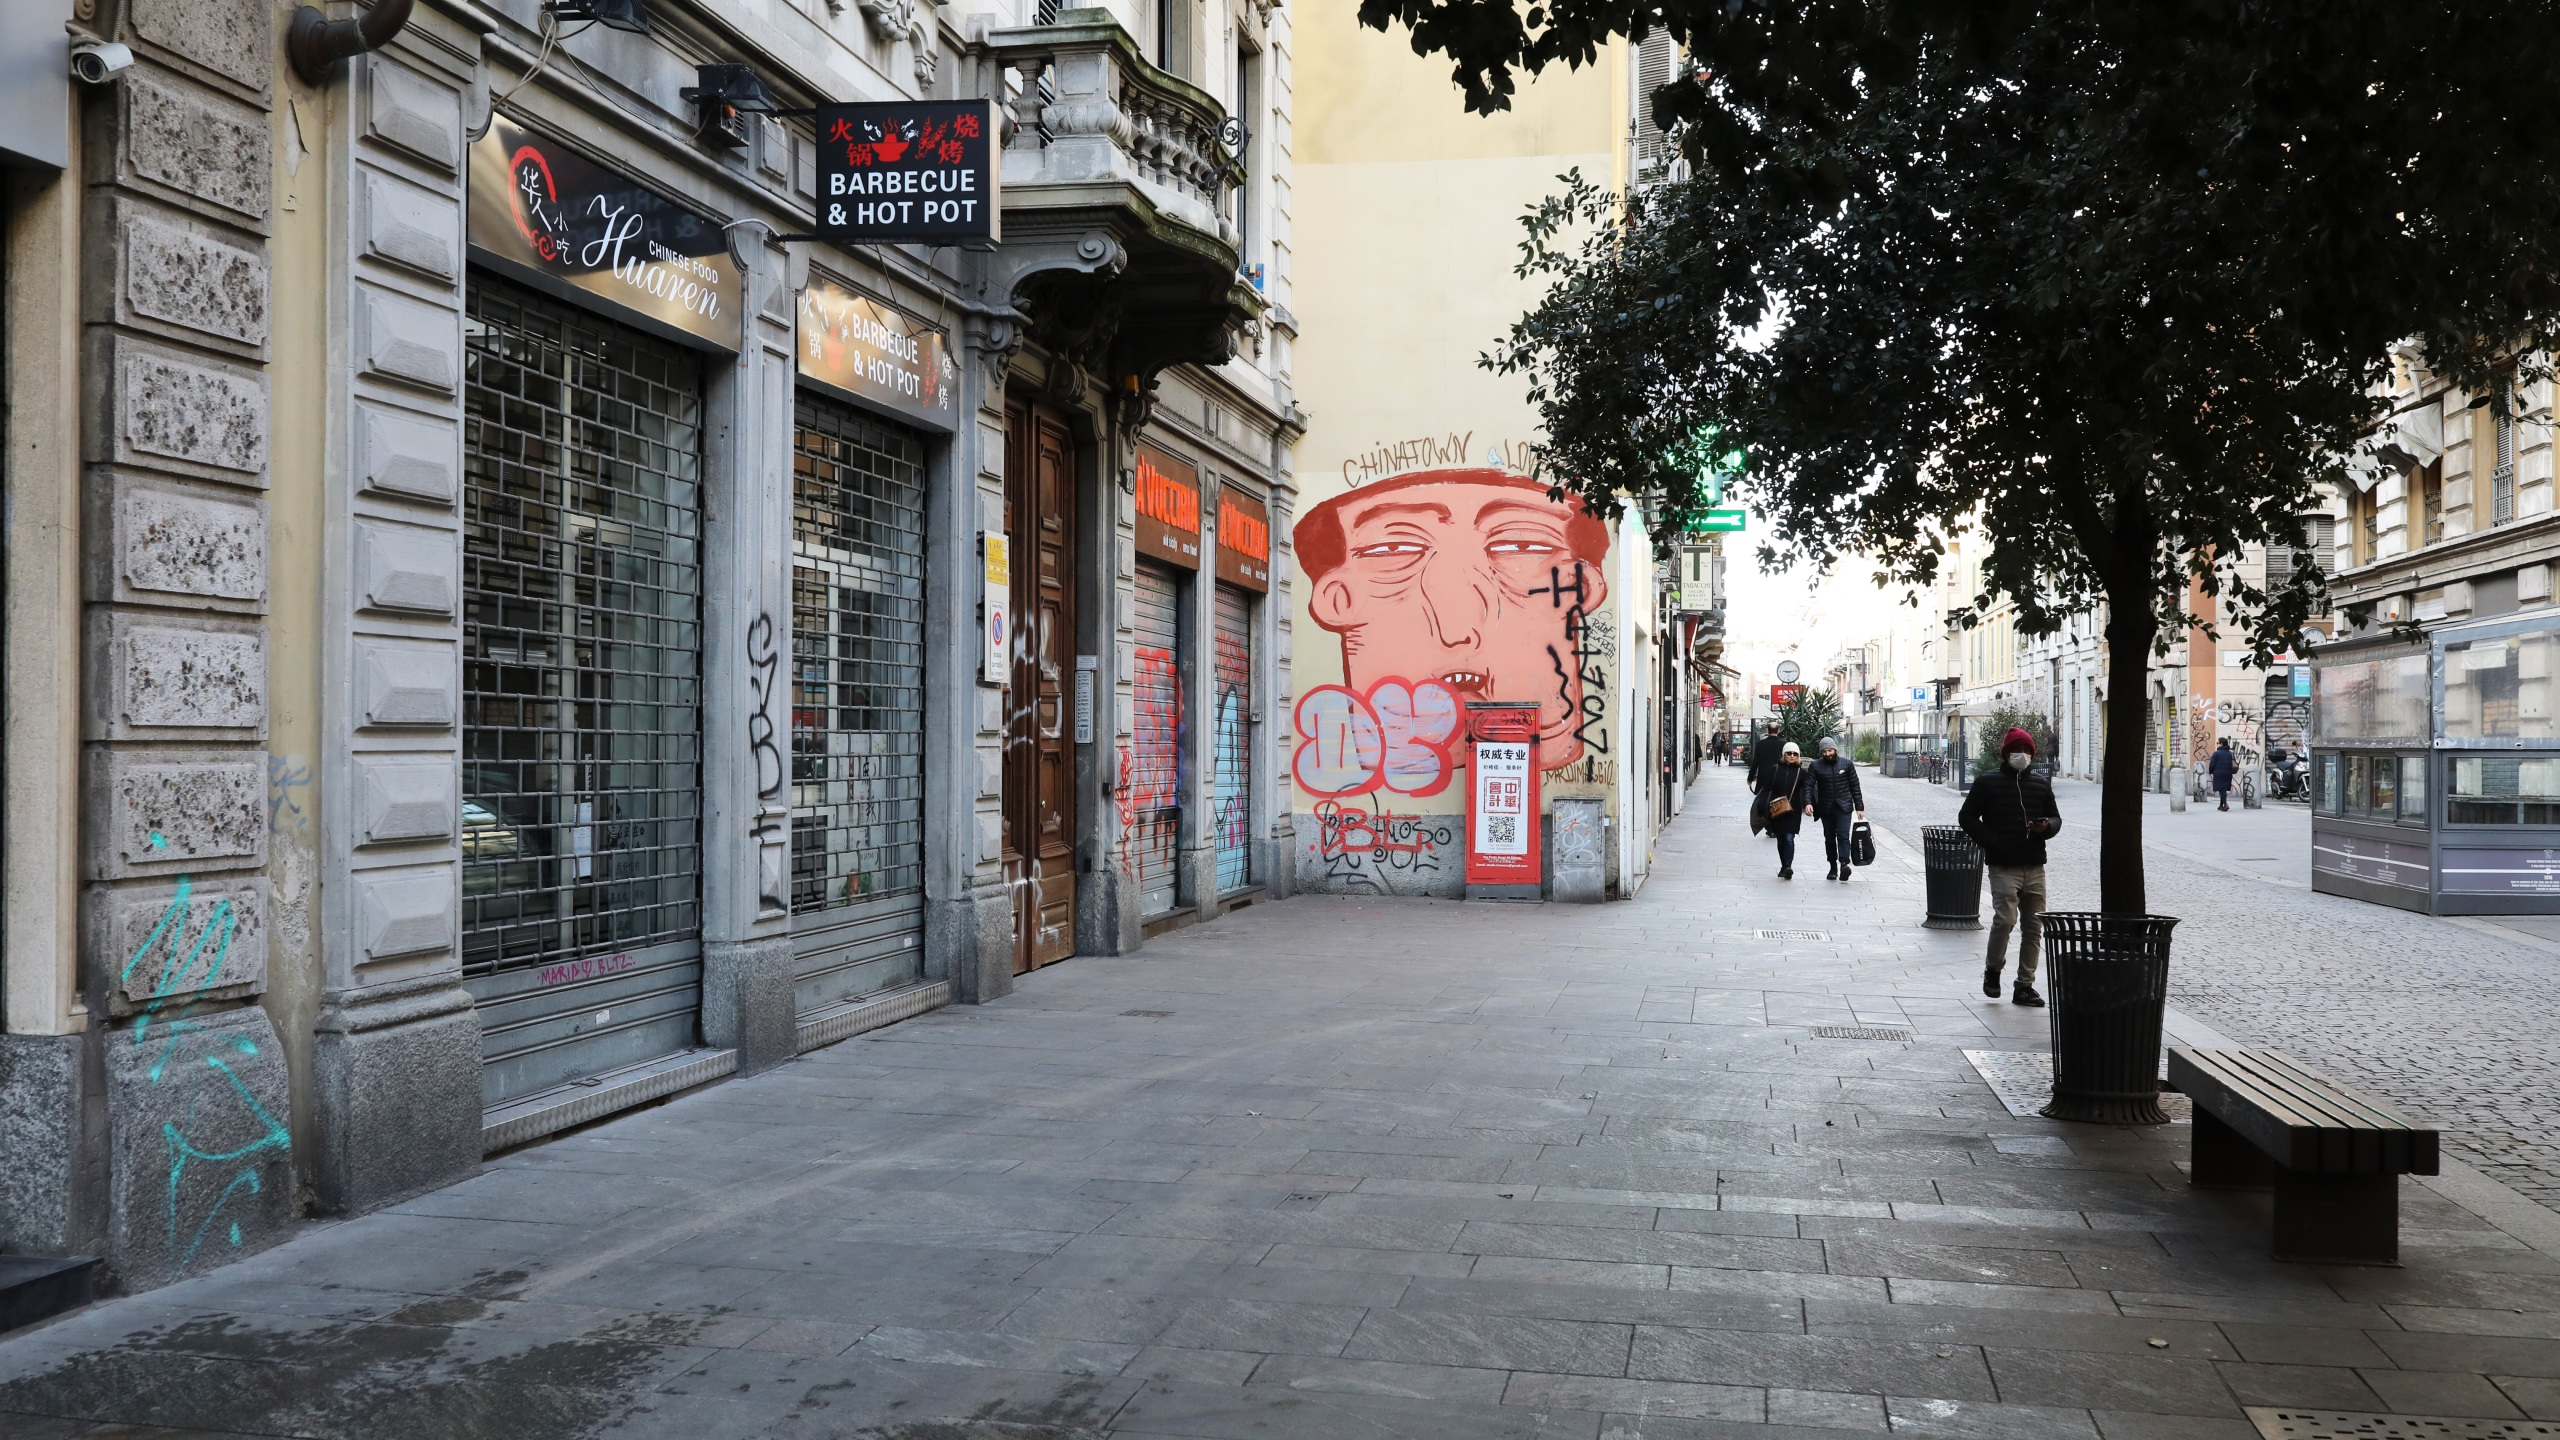 Streets are seen empty and all shops close on Feb. 27, 2020, in Milan, Italy, amid an outbreak of coronavirus. (Marco Di Lauro/Getty Images)